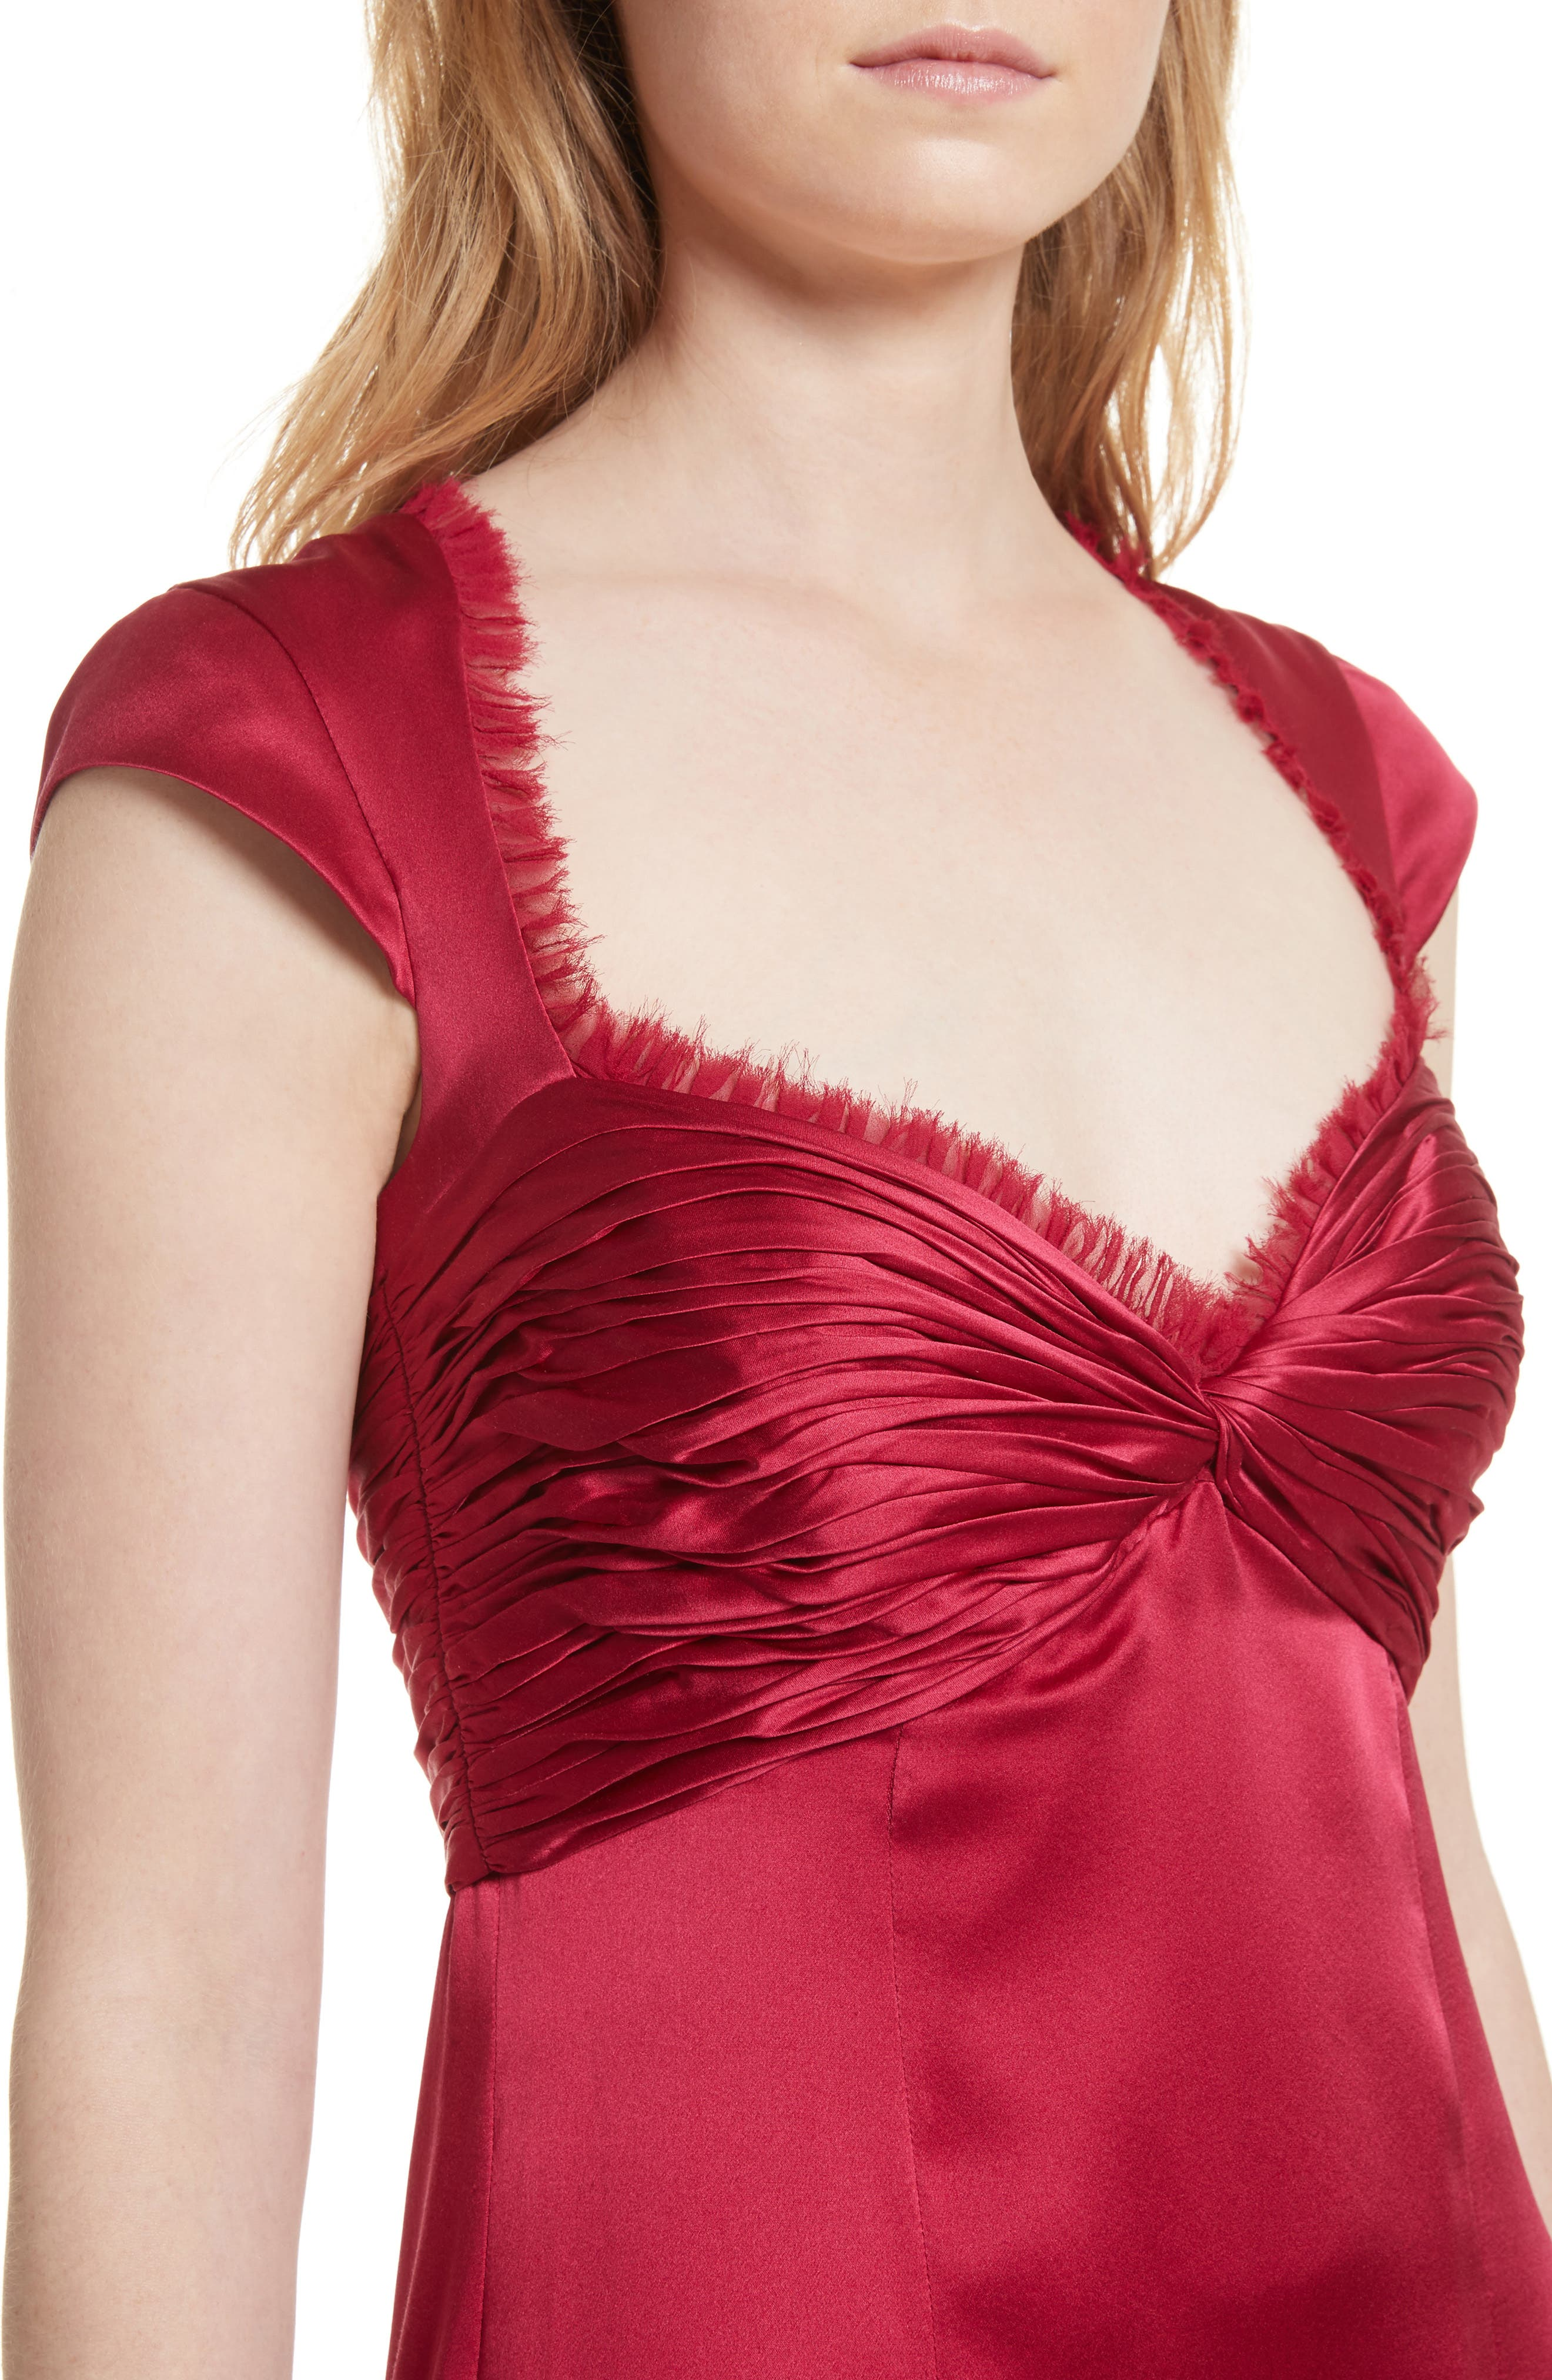 Marnie Satin Dress,                             Alternate thumbnail 4, color,                             Cerise